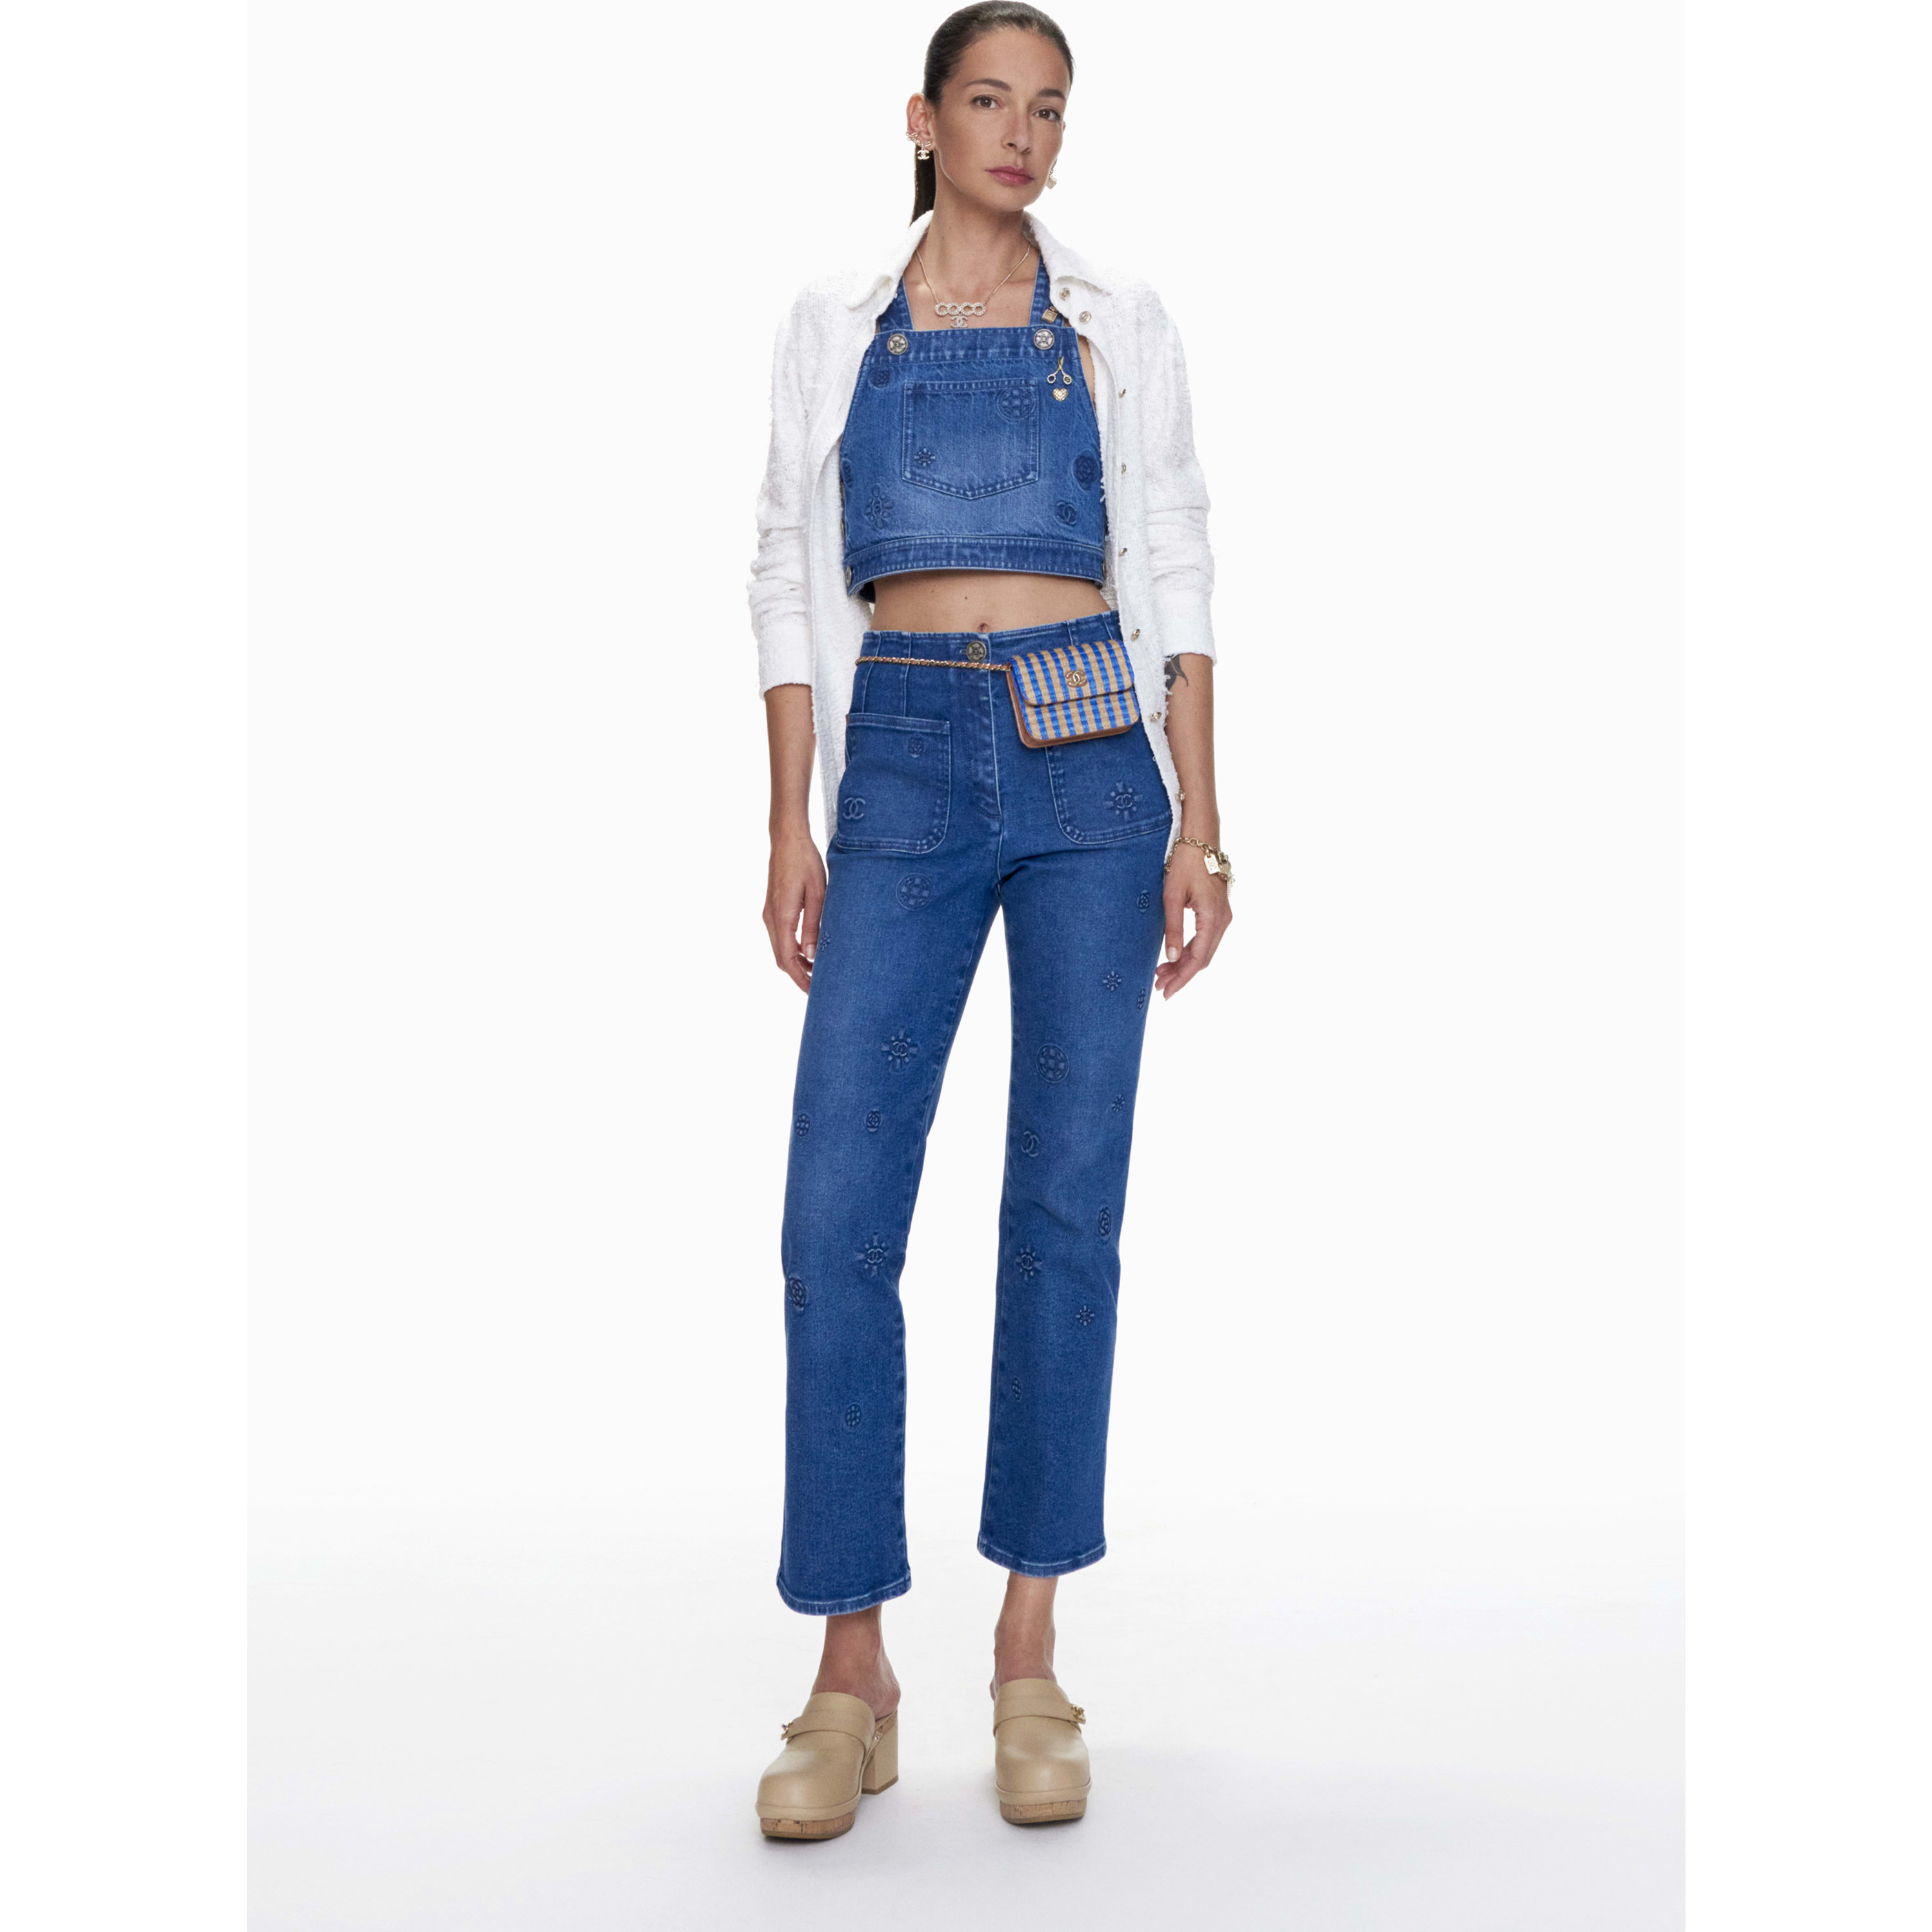 Jeans - Blue - Embroidered Washed Stretch Denim  - CHANEL - Default view - see standard sized version